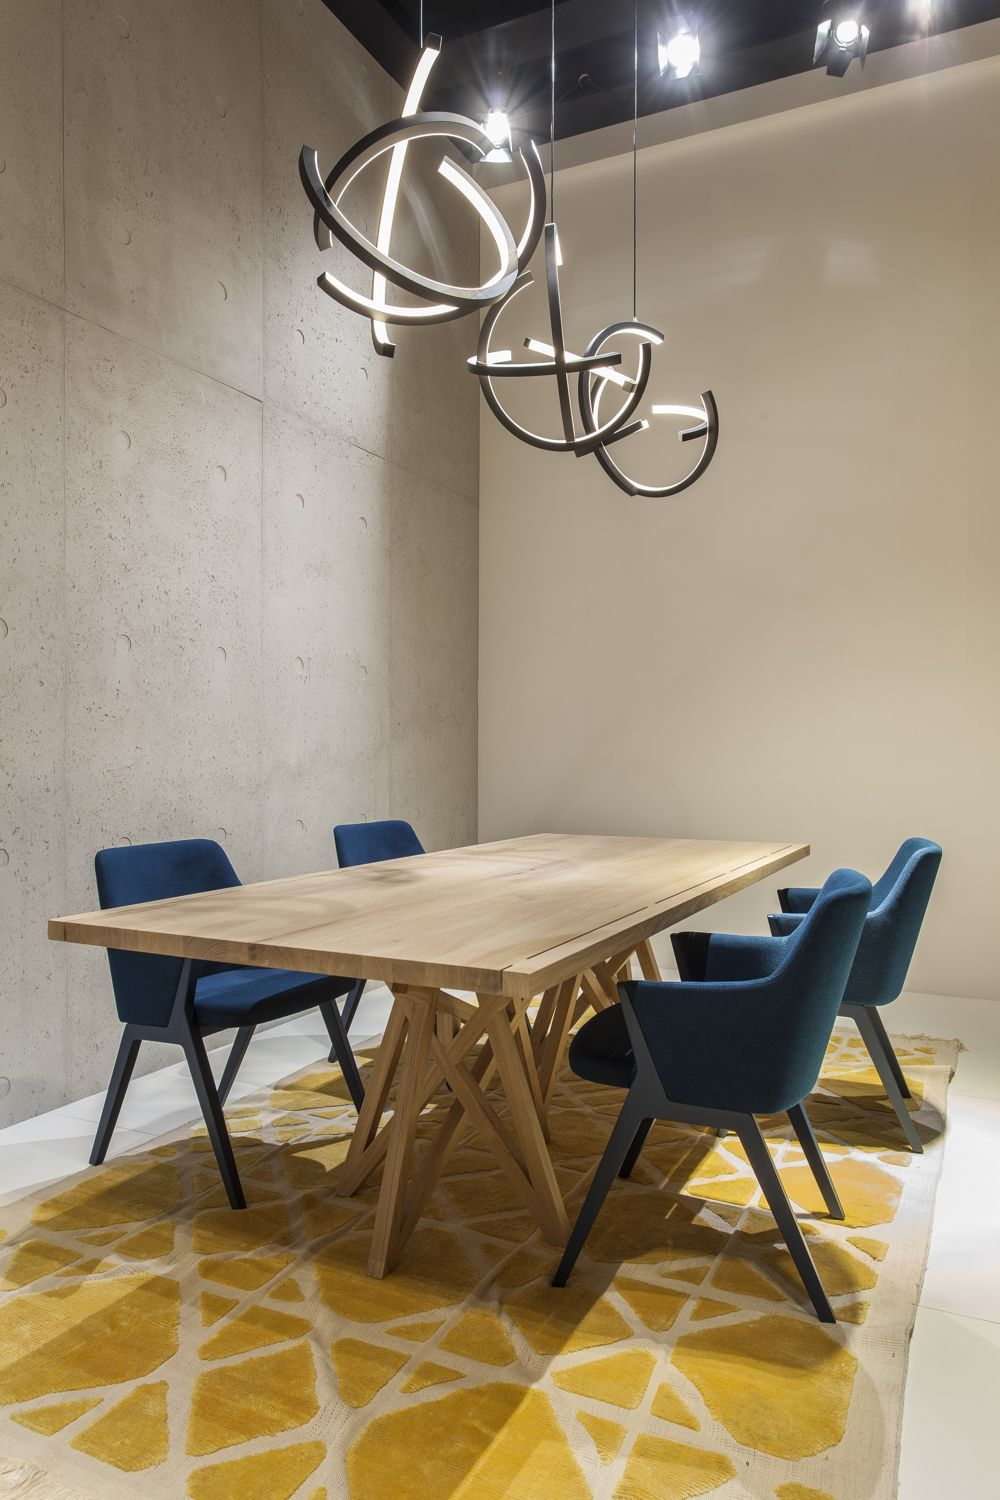 Roche Bobois At The Imm Cologne Fair Saga Dining Table Designed By Christophe Delcourt Dining Table Interior Design Dining Room Dining Table In Living Room